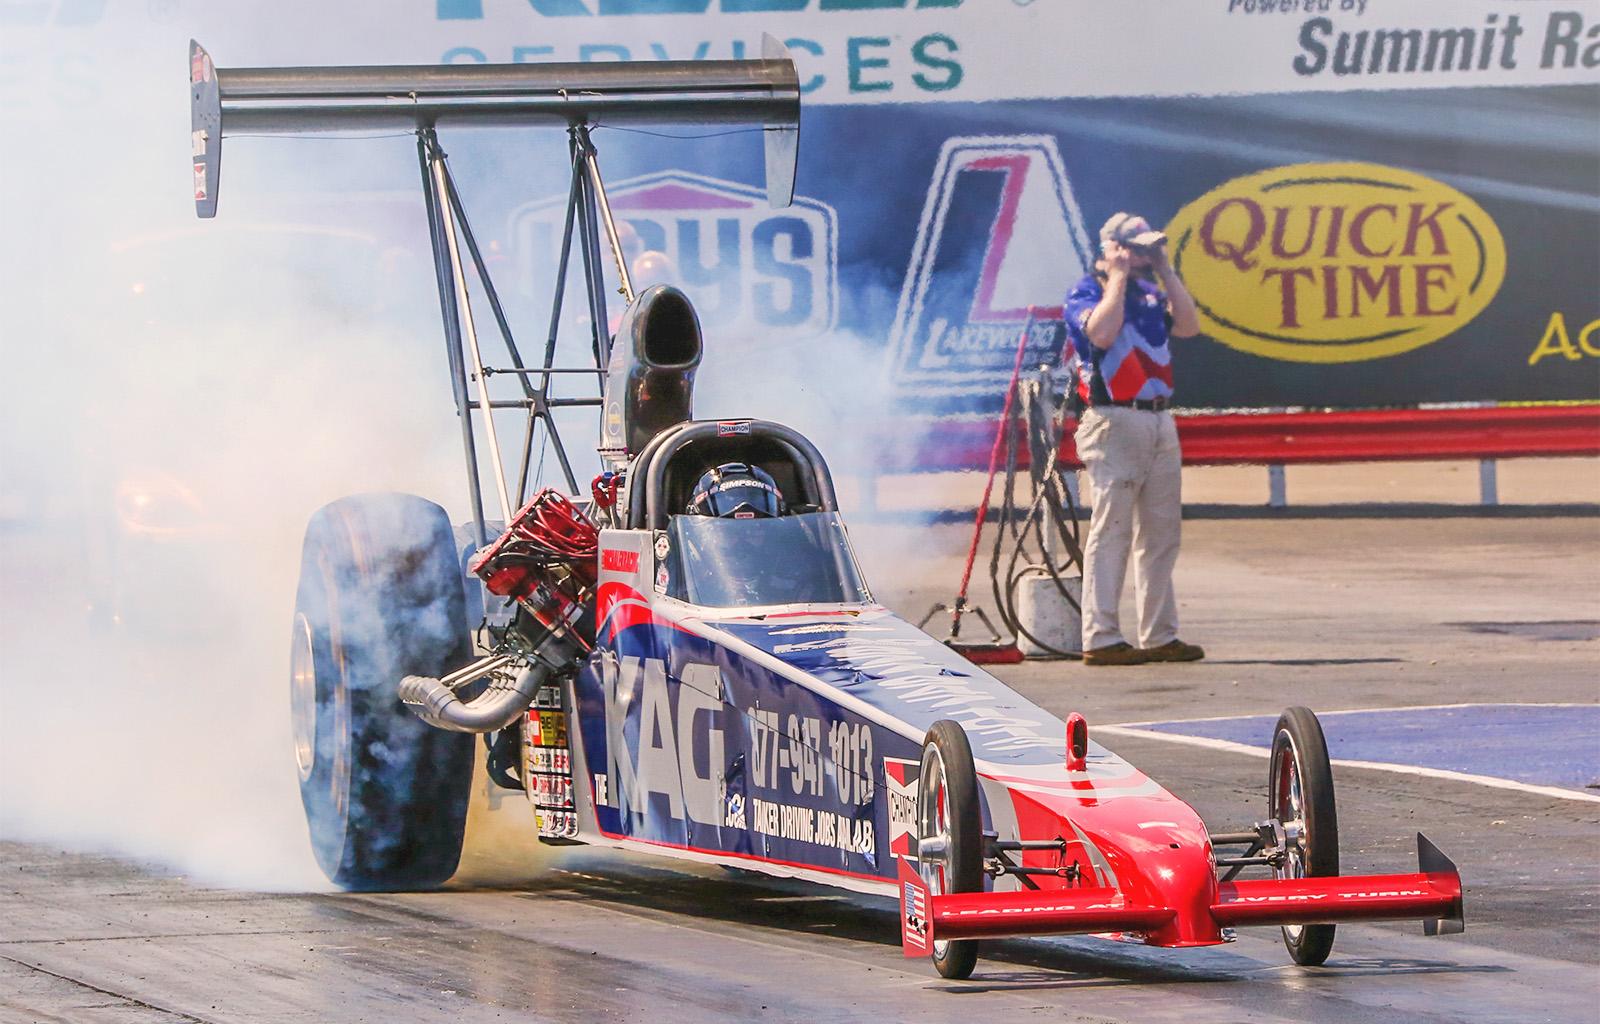 Summit Motorsport Park racing fans will see the Kenan Advantage Group A/fuel dragster on track for the second time in 2014.